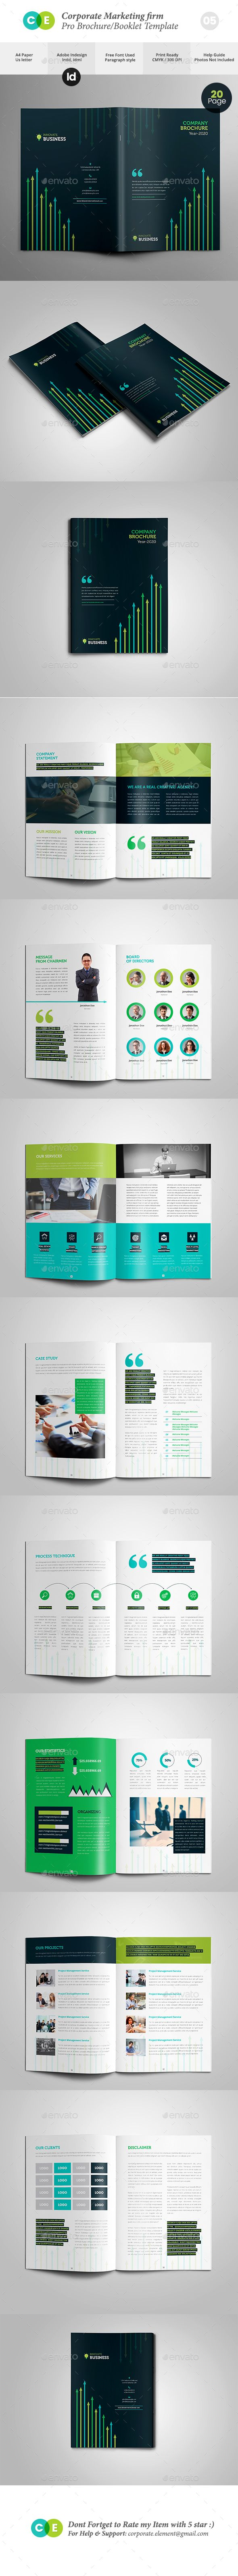 Corporate Marketing Firm Pro Brochure Template InDesign INDD